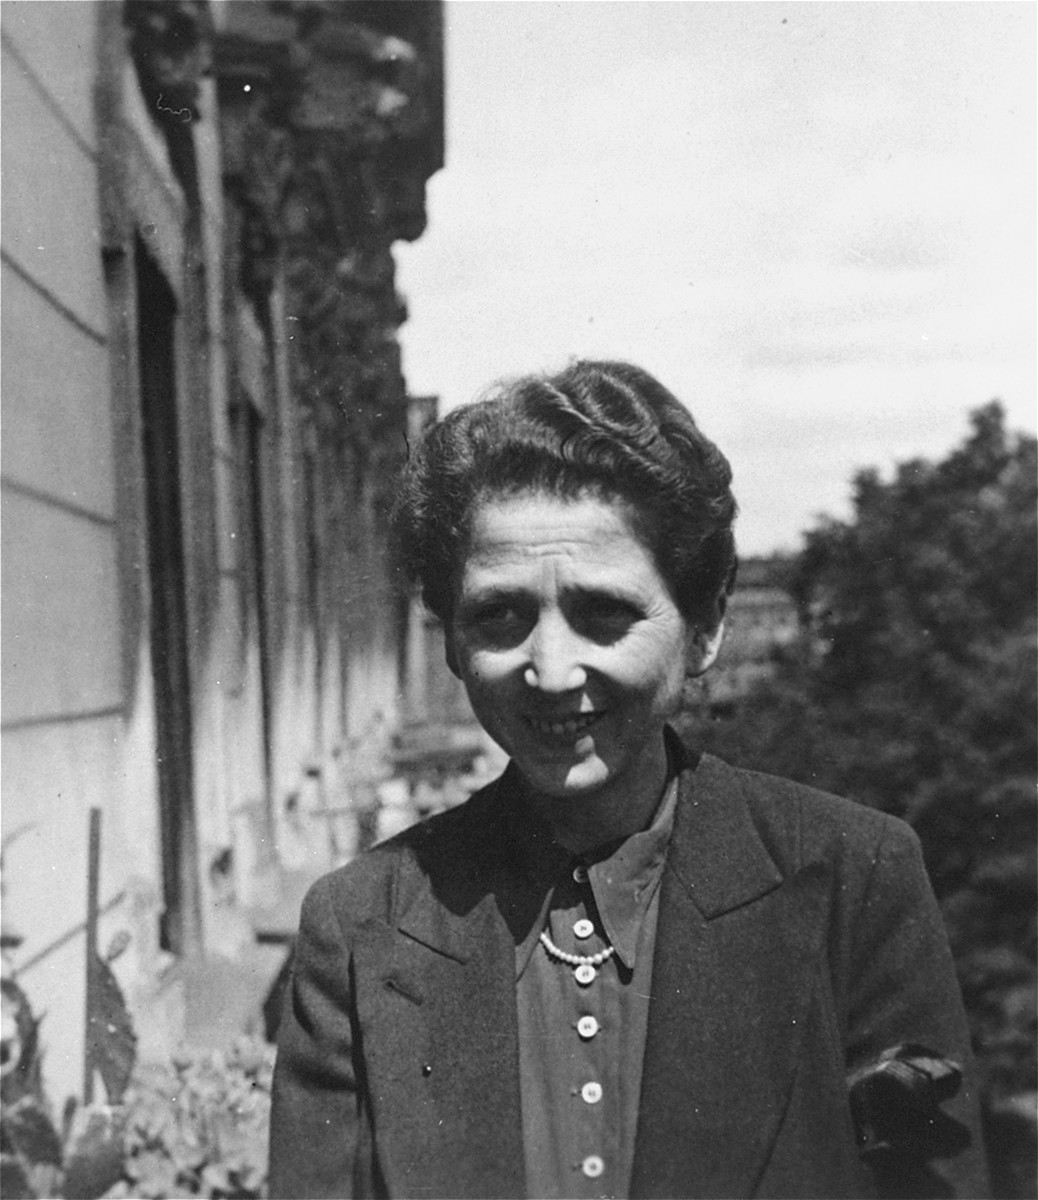 Portrait of Lydia (Wolffberg) Ellgass outside her apartment located on Klopstockstrasse 18 in Berlin.  Lydia was deported to Riga in 1943.